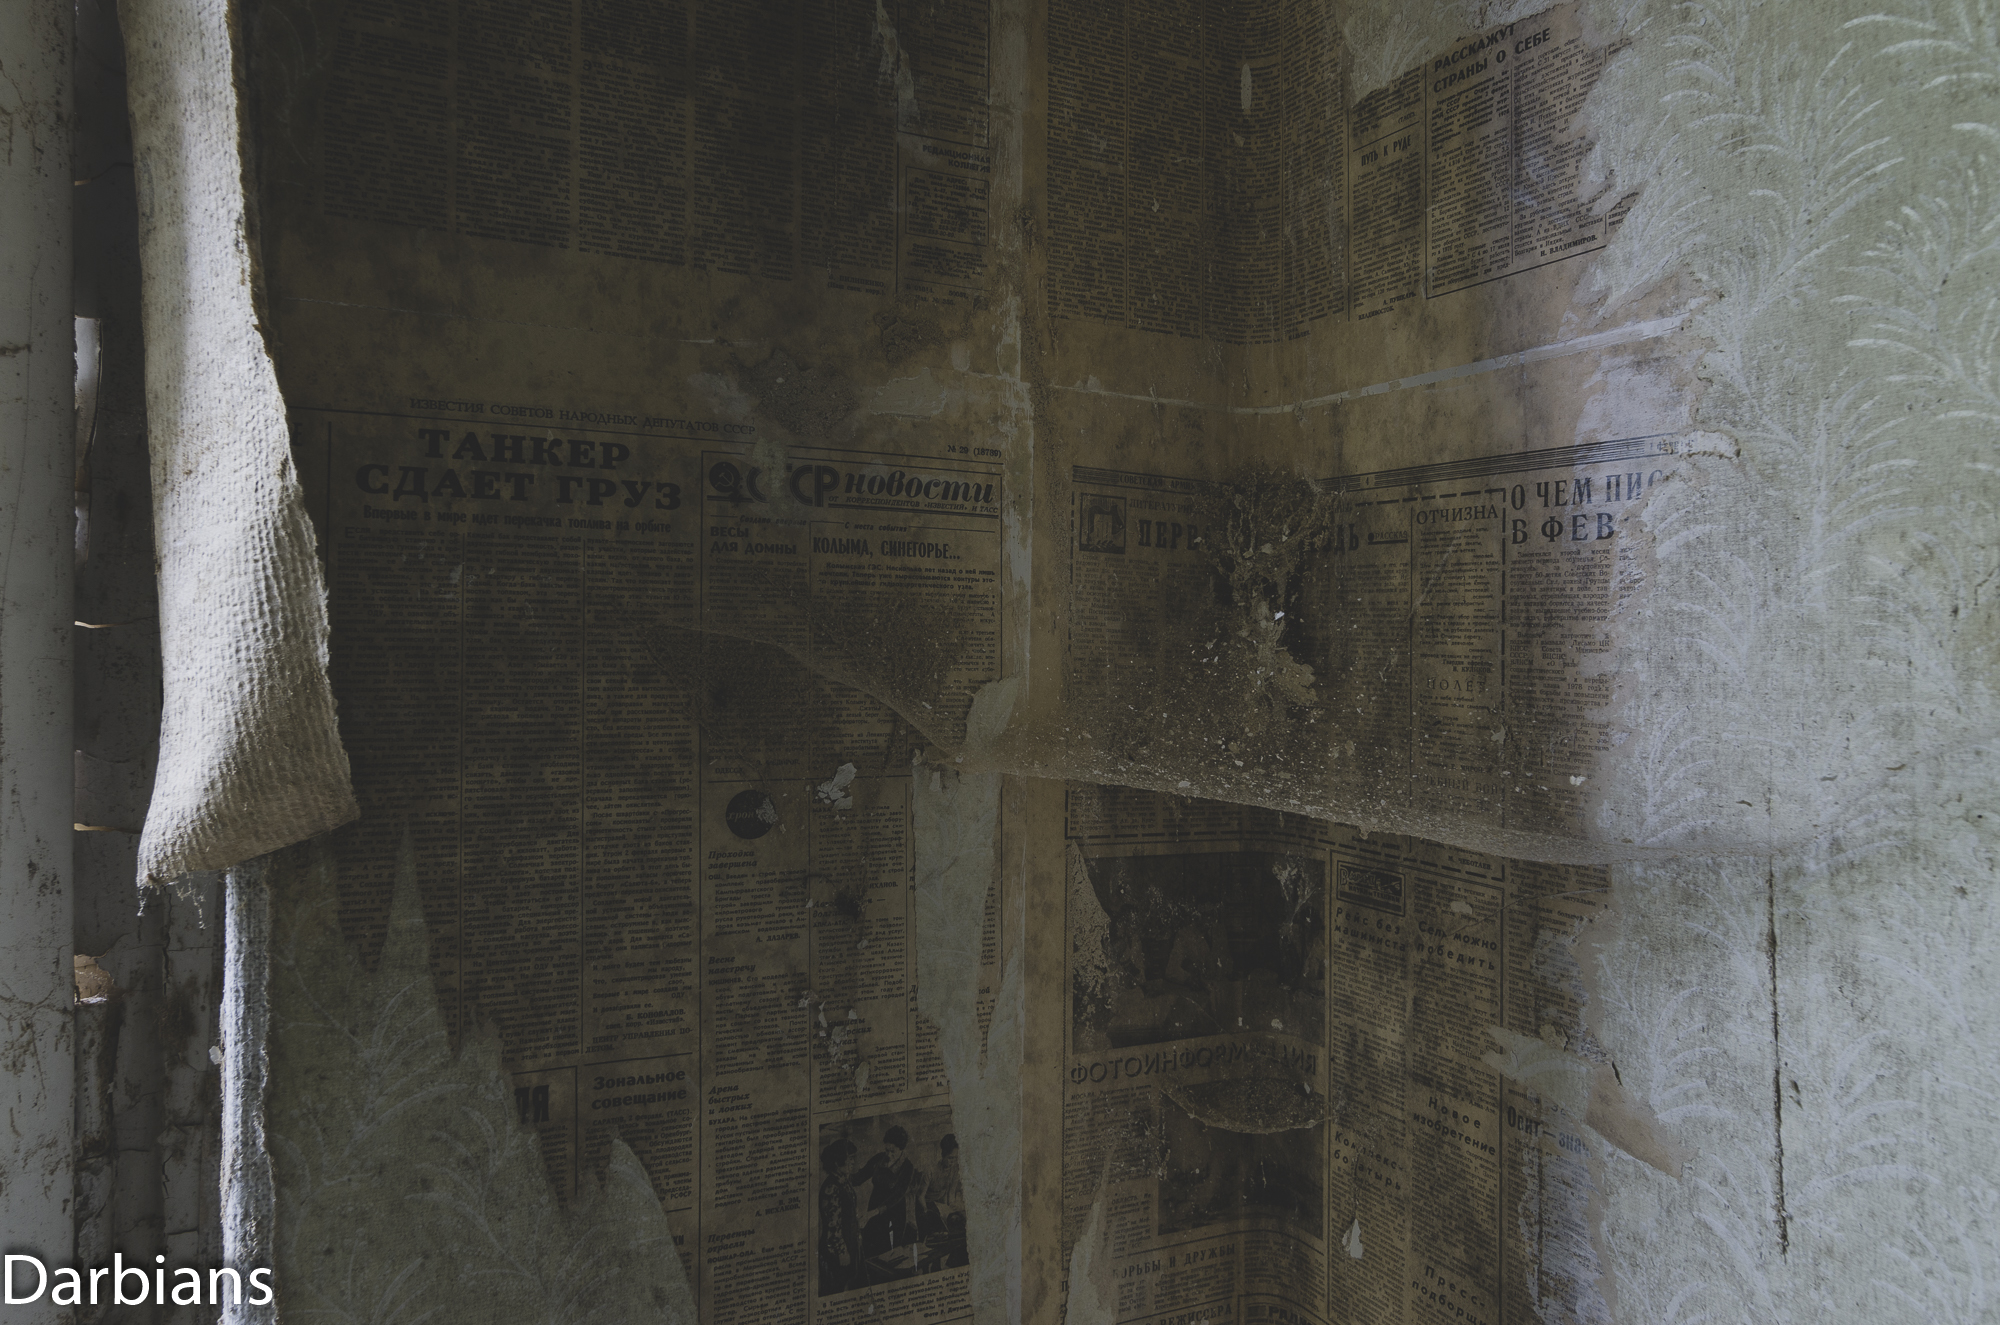 Details of newspapers used as wallpaper.